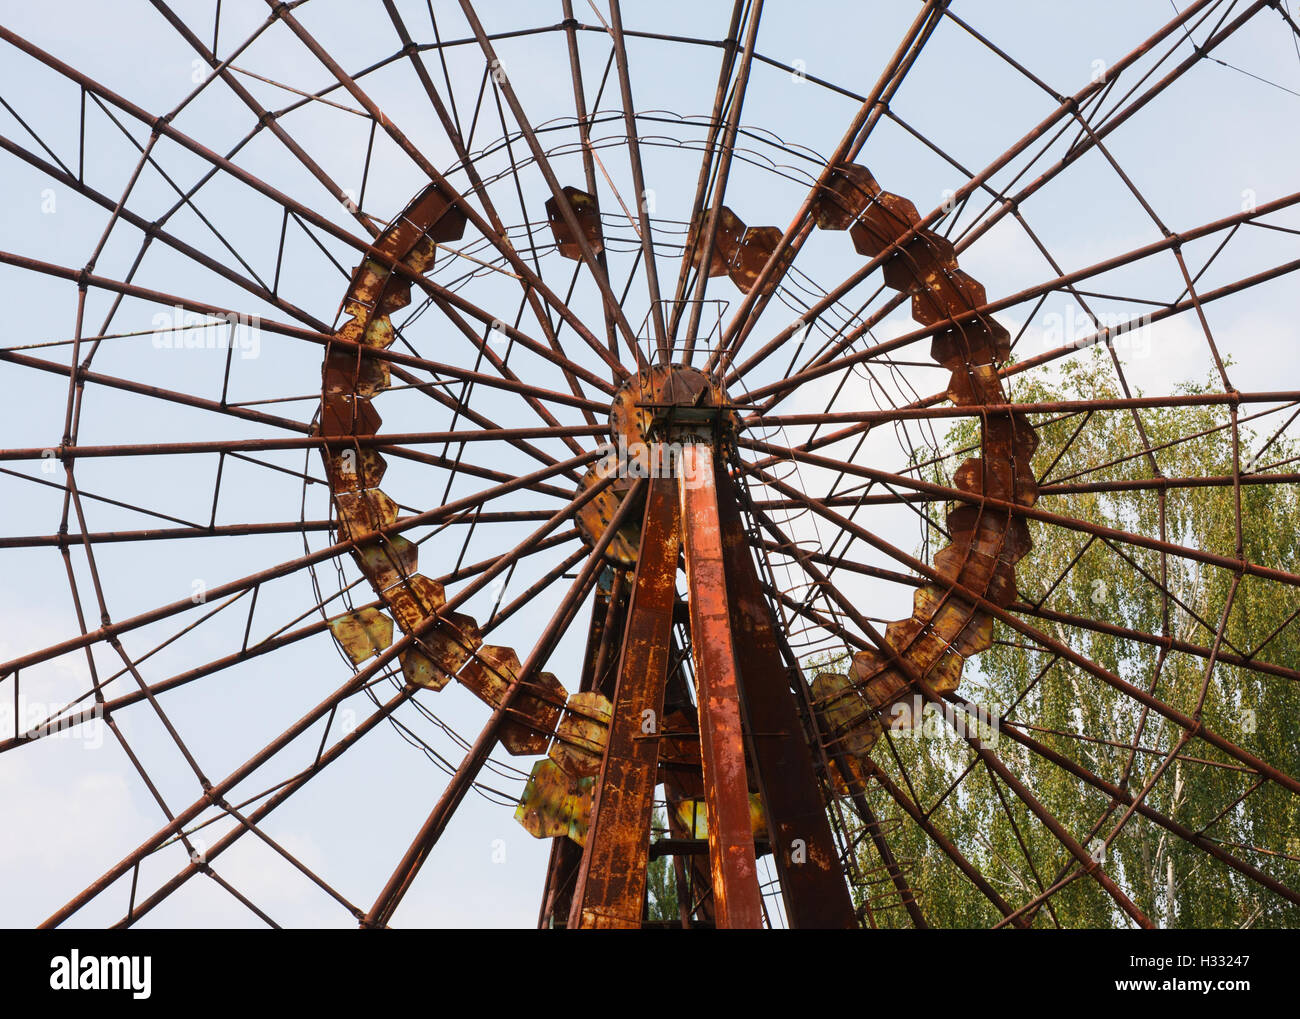 The ferris wheel of the Prypiat amusement park. The wheel has become a symbol of the 1986 Chernobyl nuclear disaster. - Stock Image